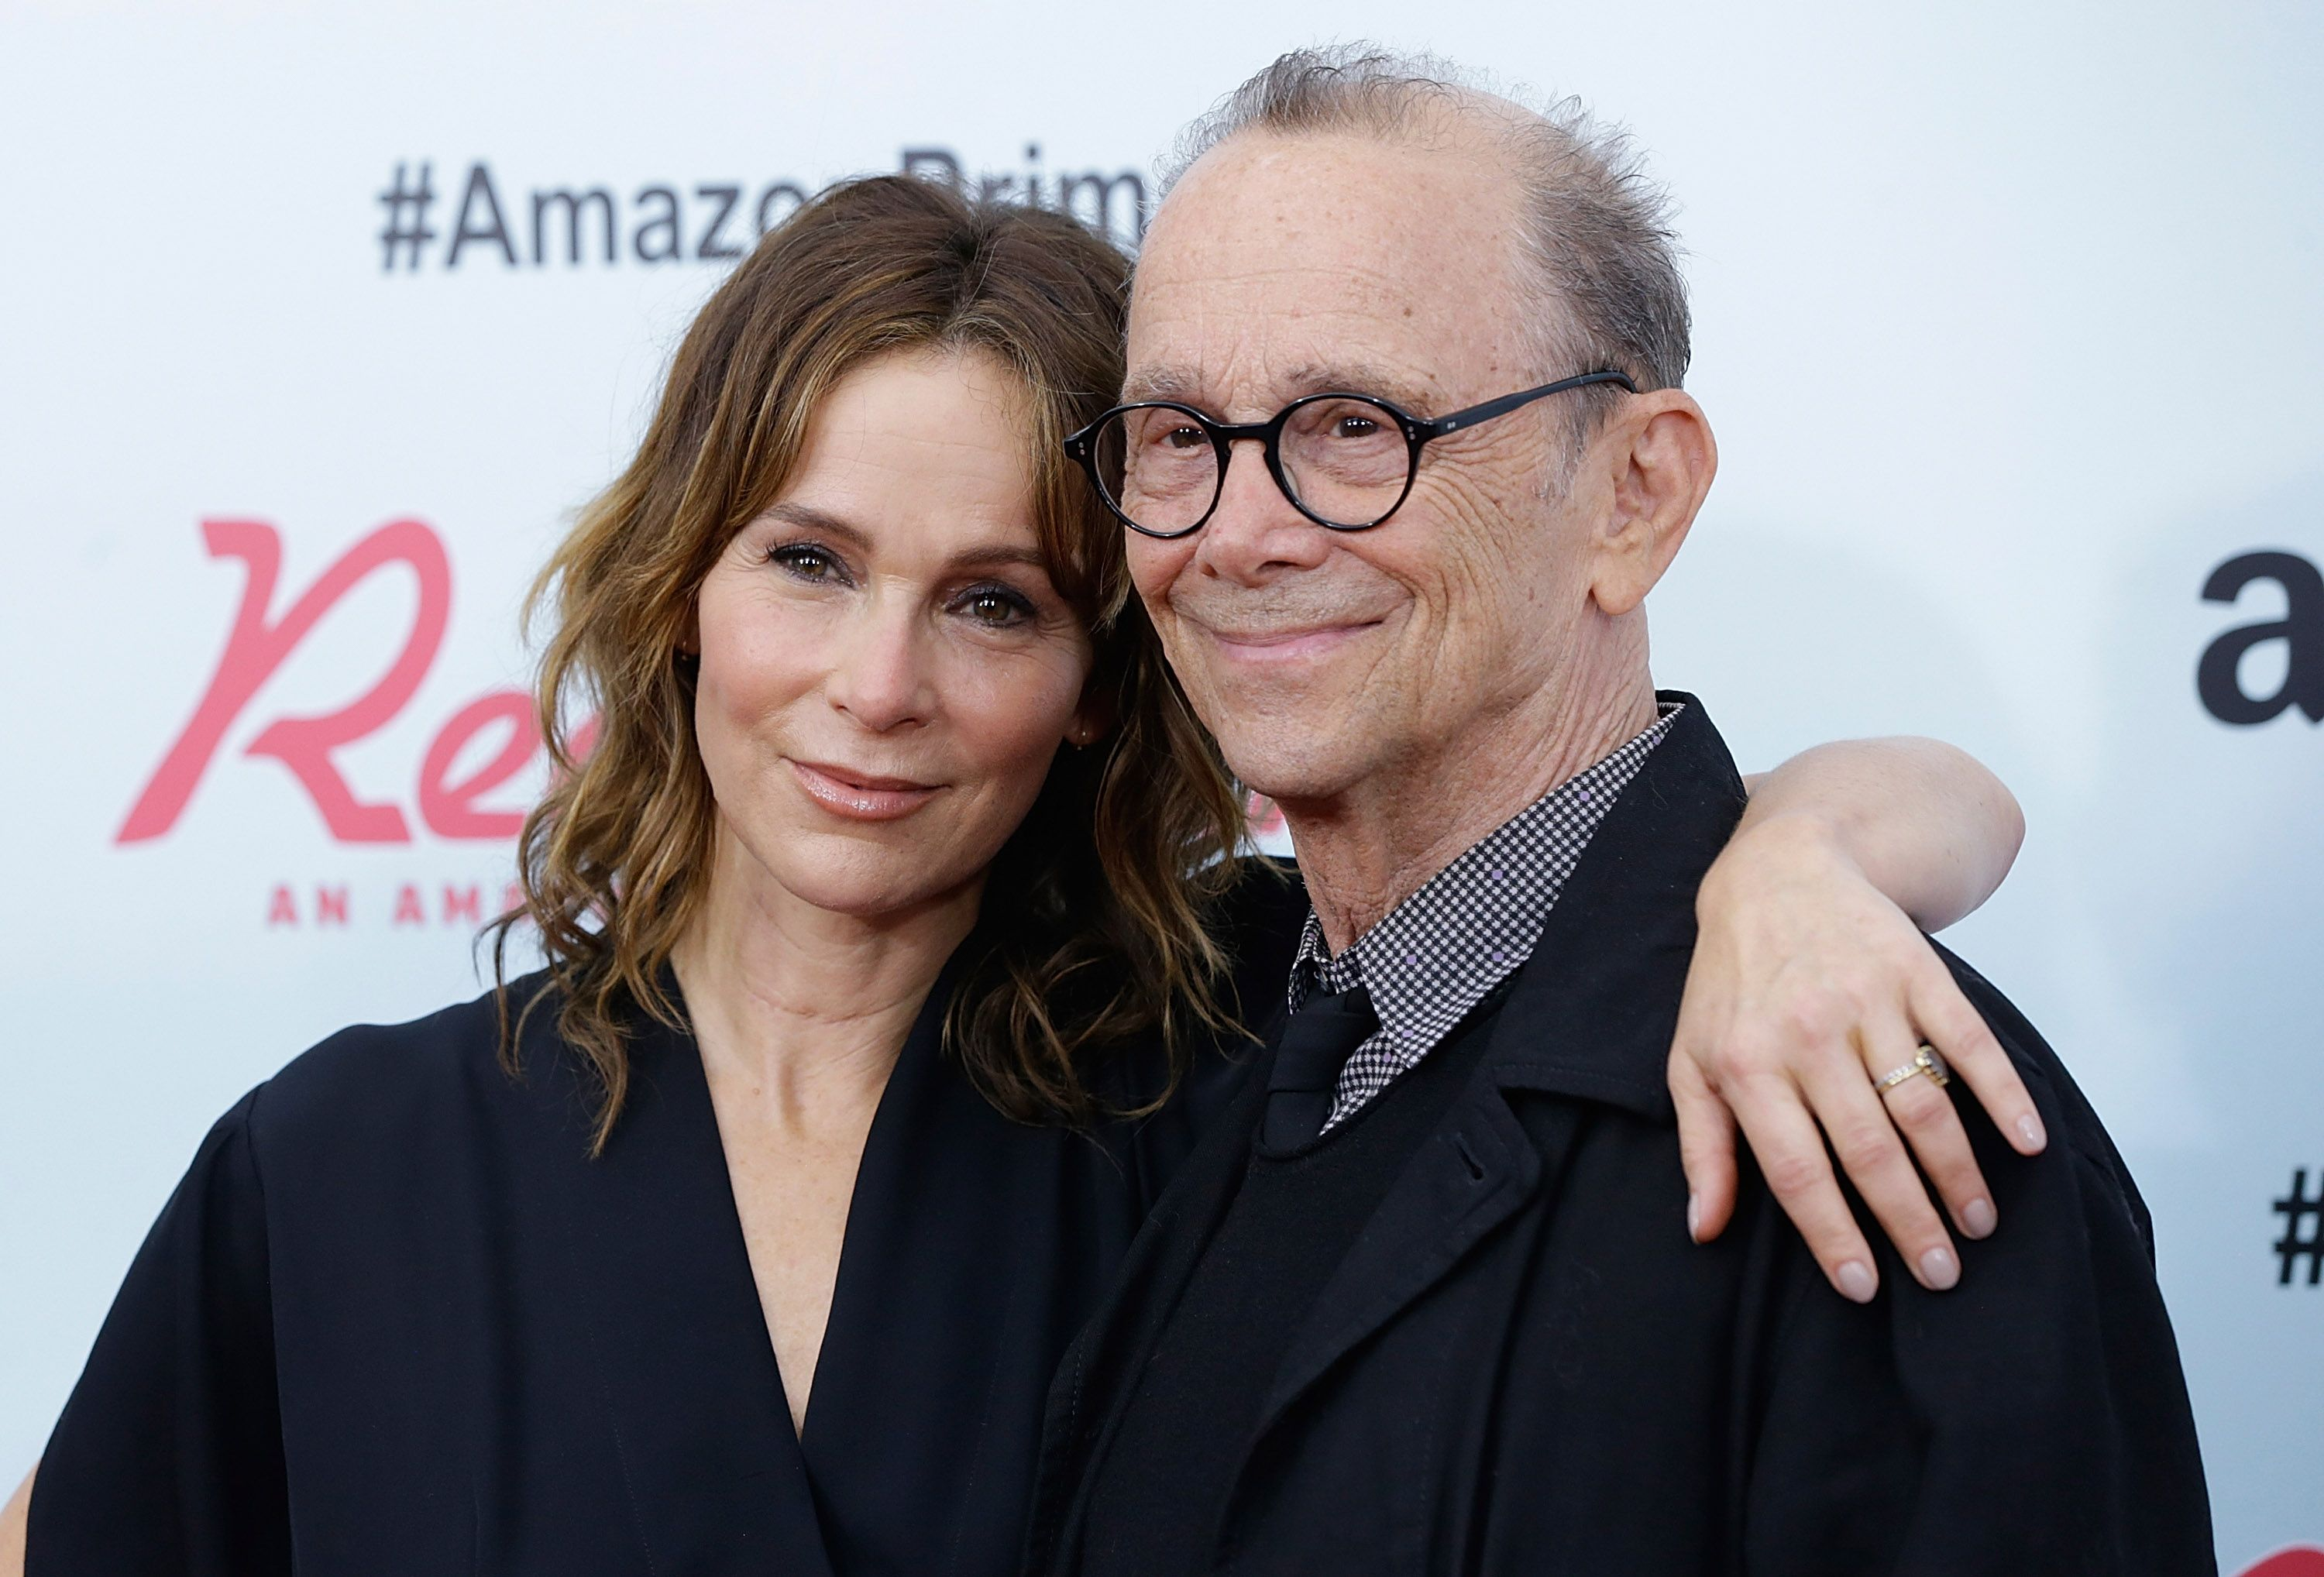 """Jennifer Grey and Joel Grey at the """"Red Oaks"""" series premiere in 2015 in New York City 